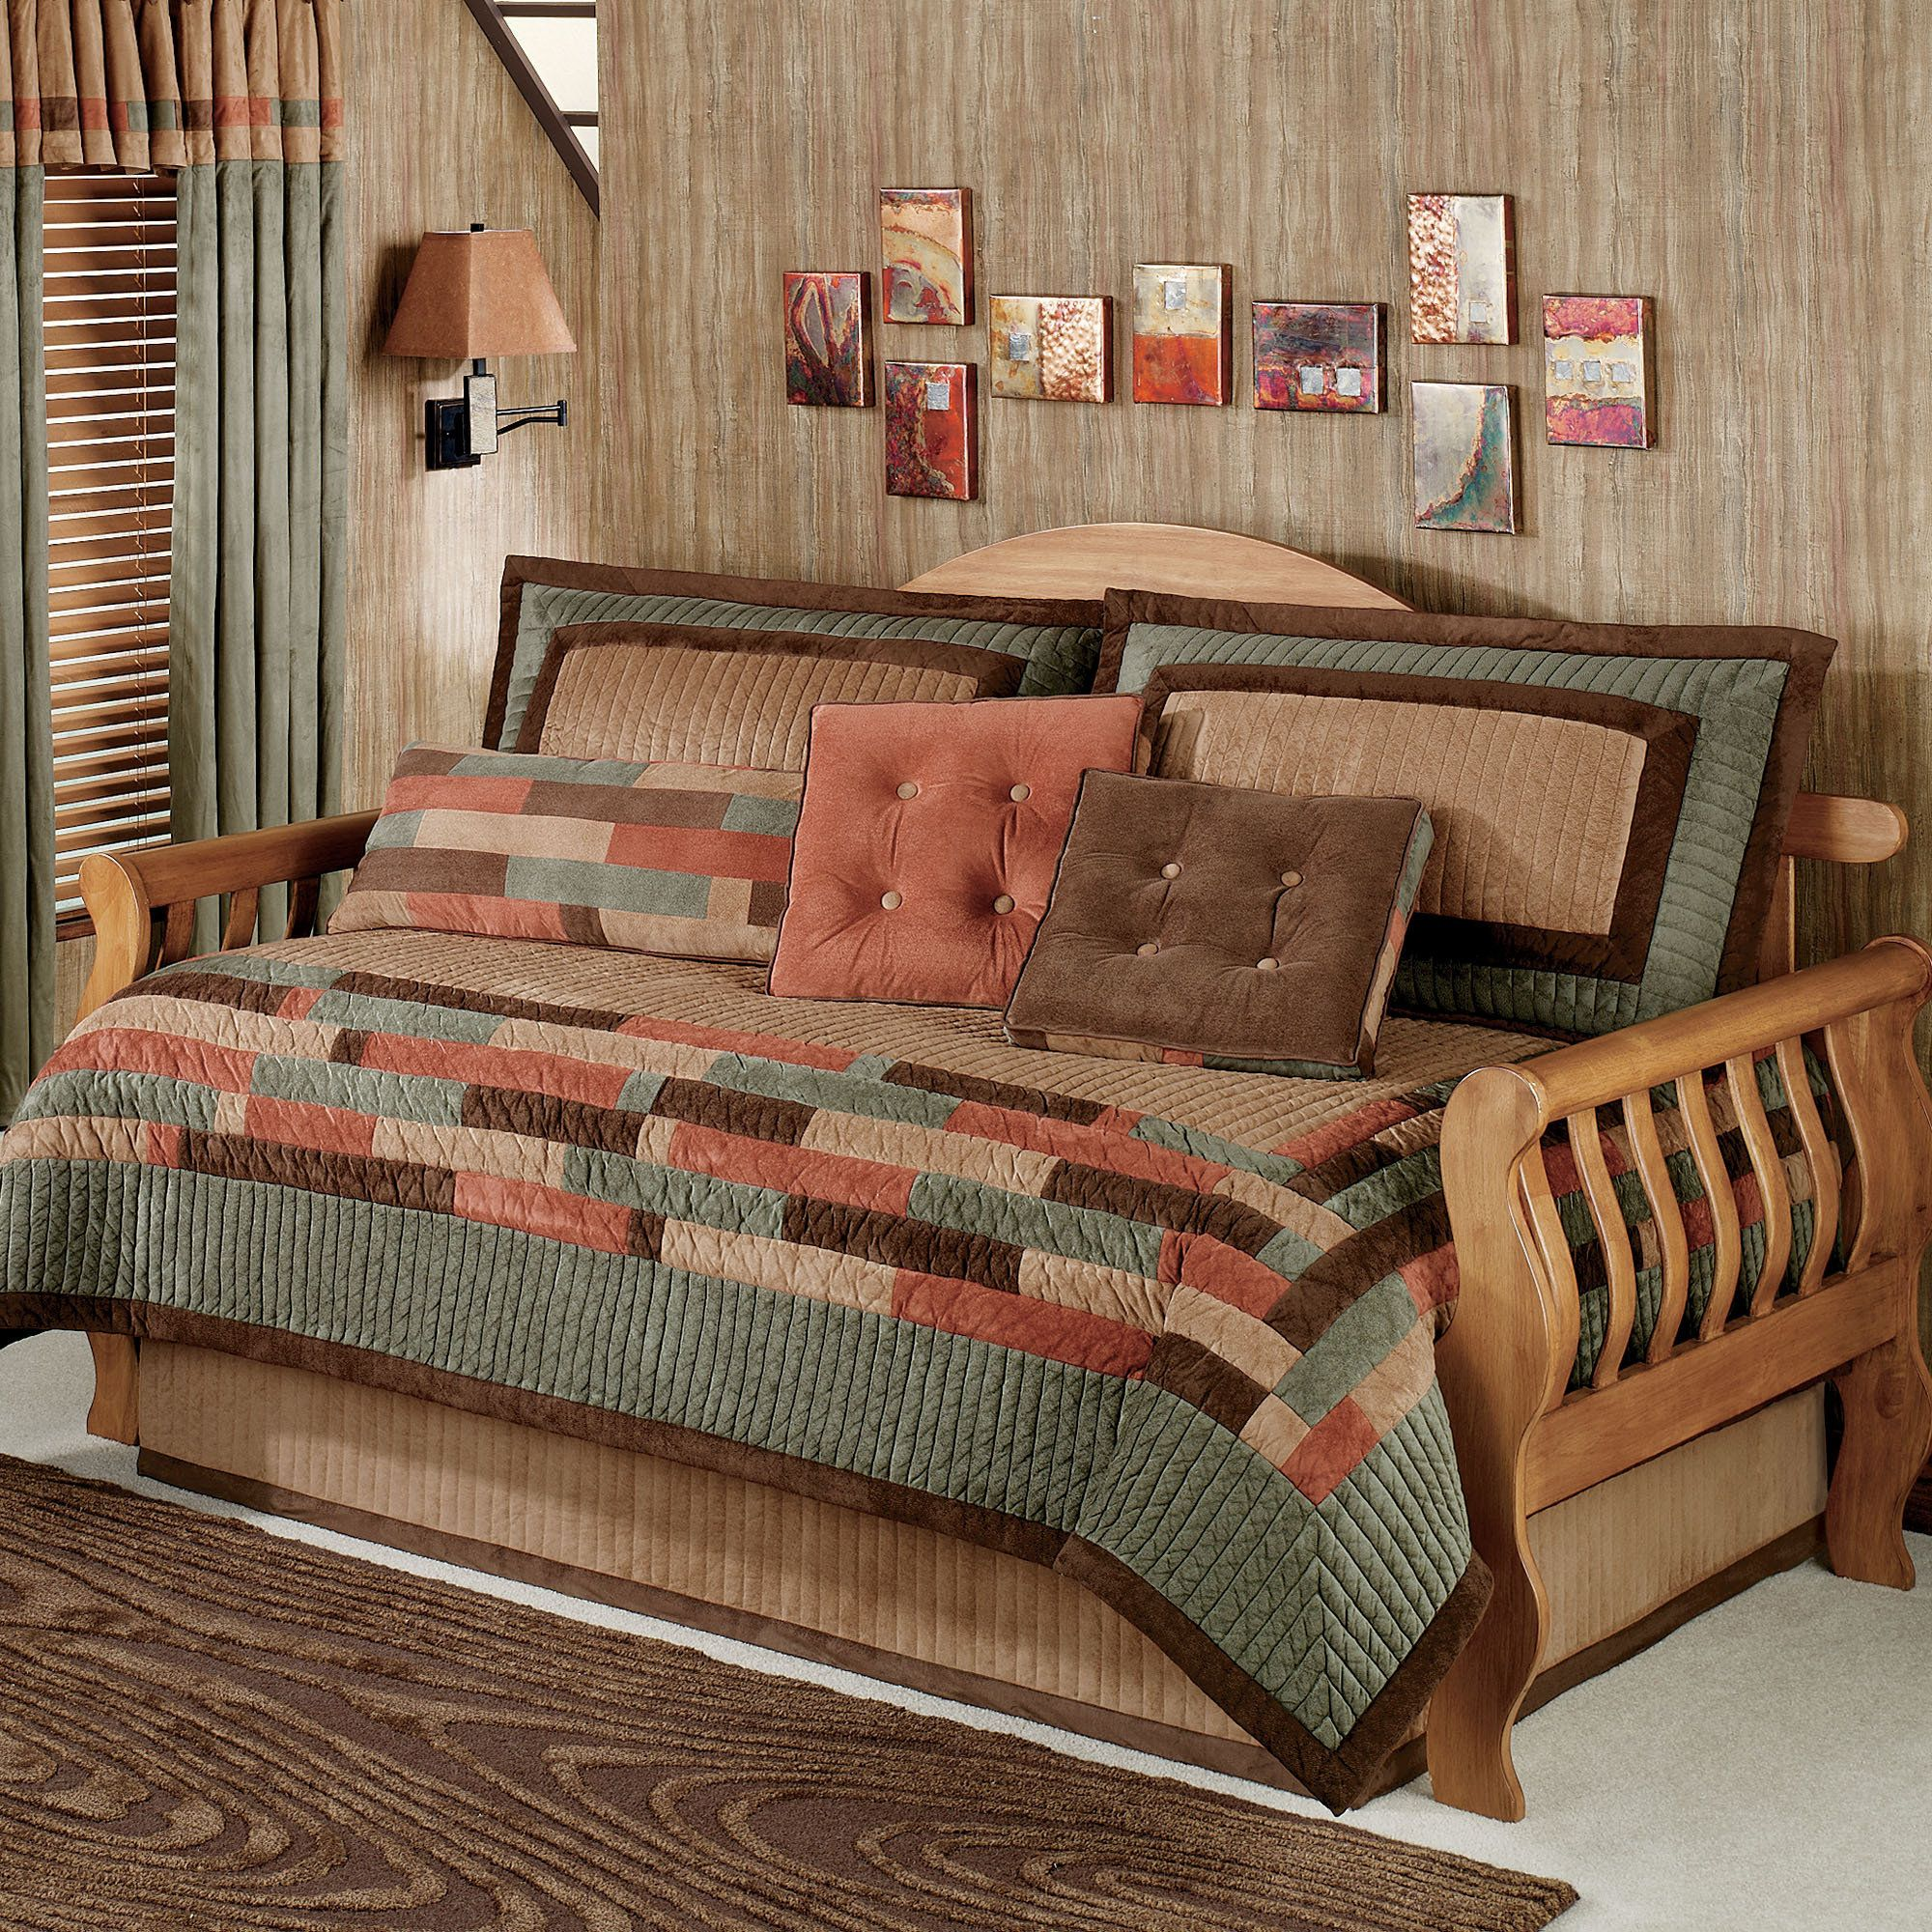 Effigy of Day Bed Covers Ideas Bedroom Design Inspirations